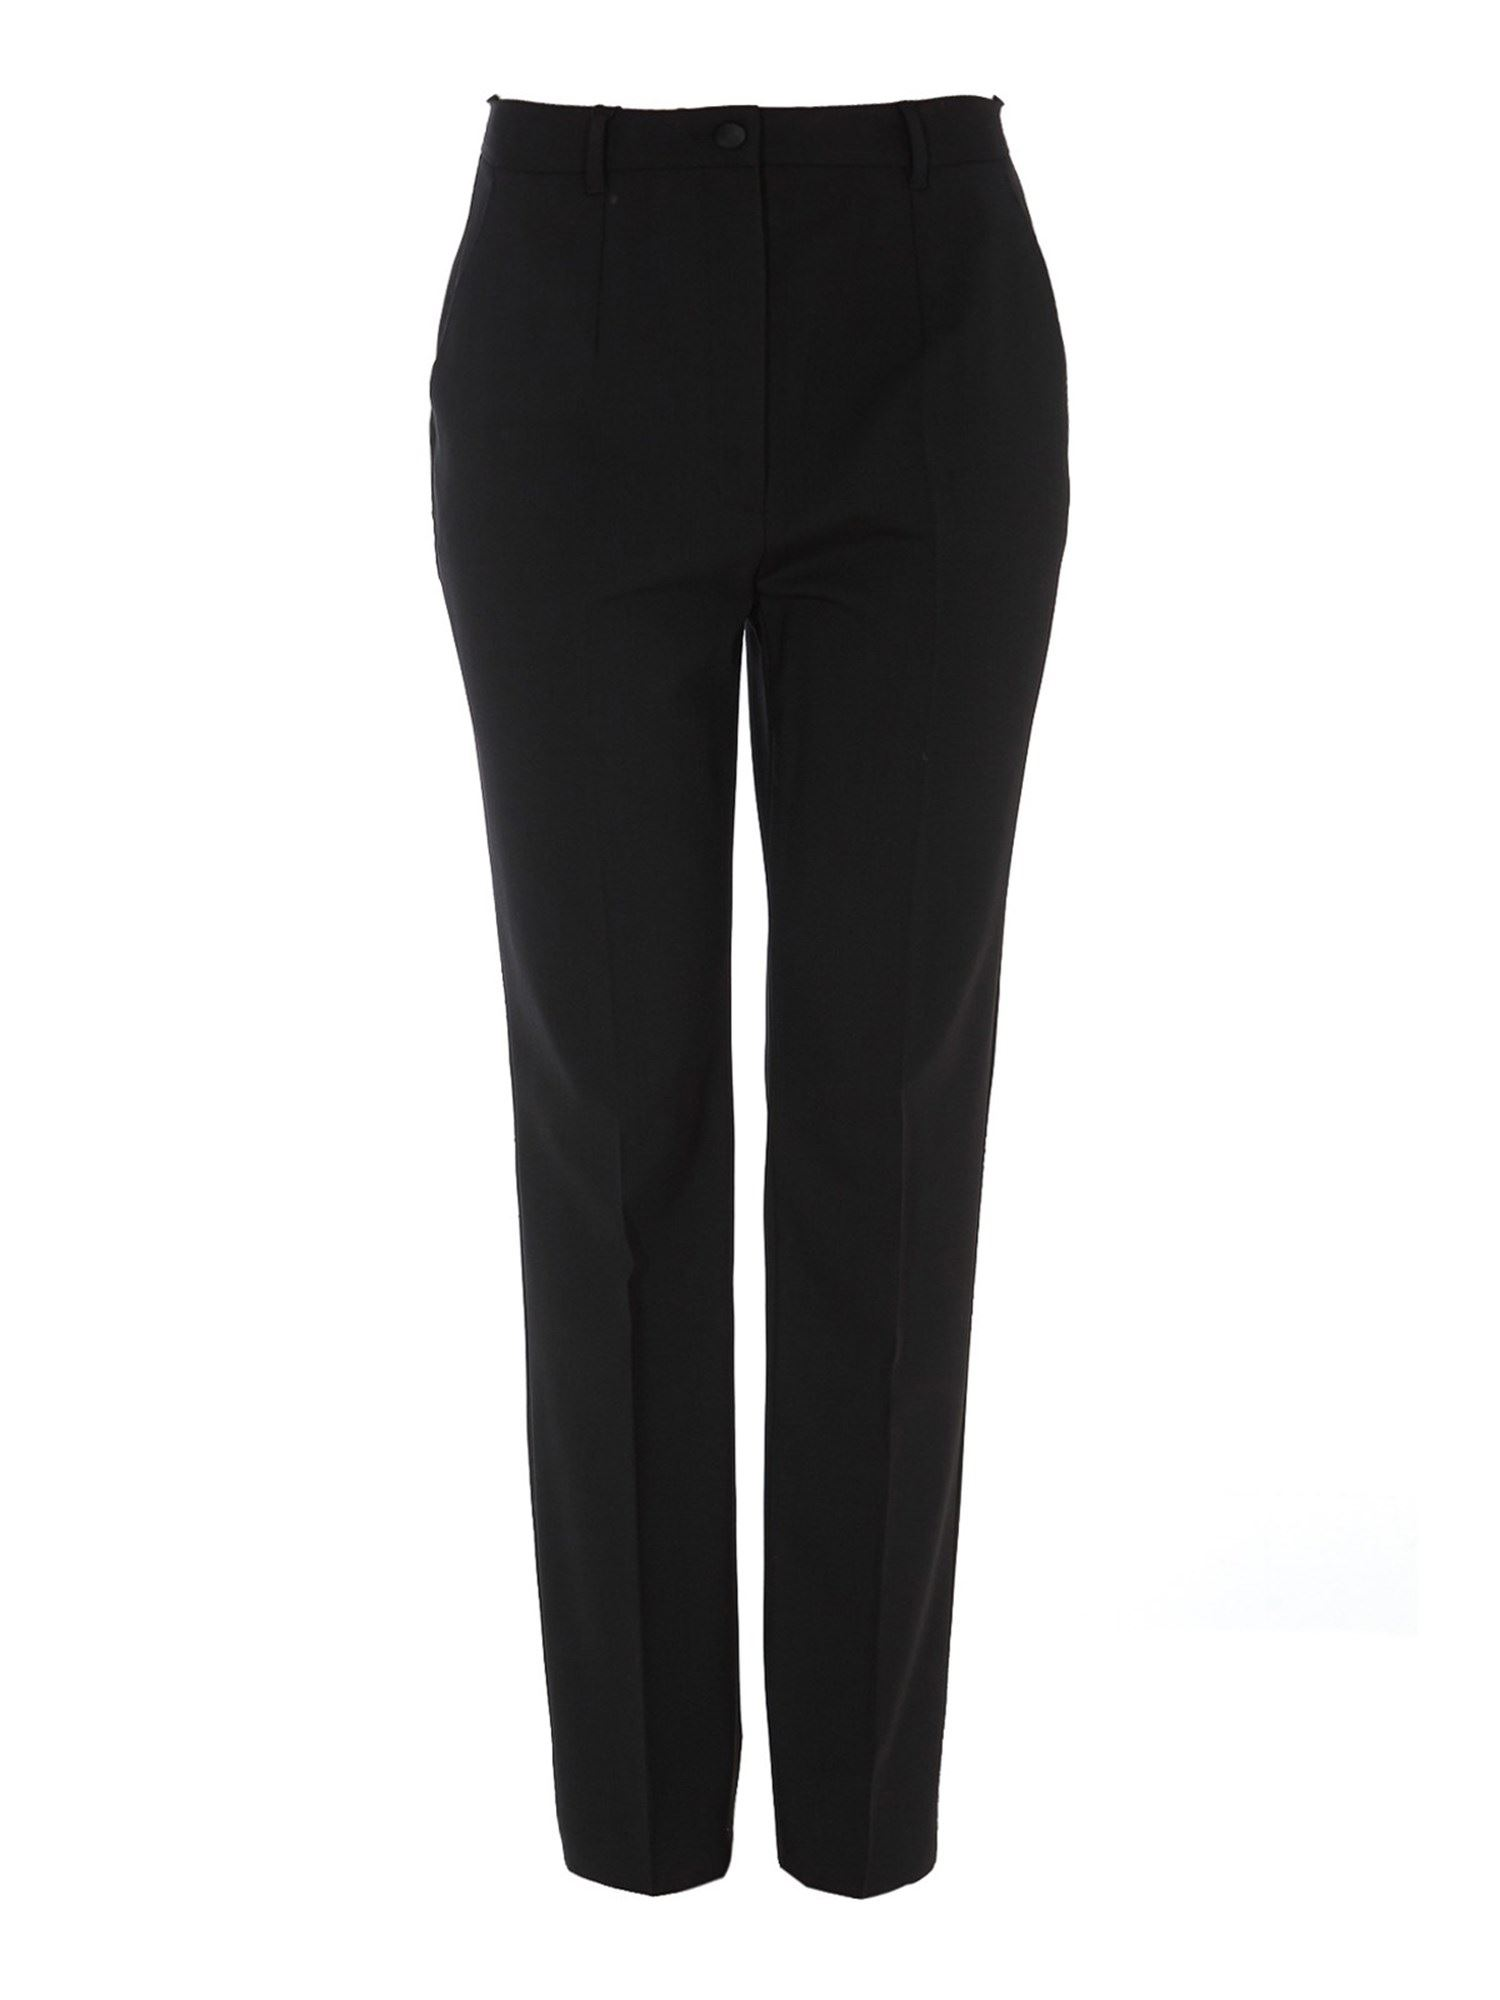 Dolce & Gabbana Stretch Wool Carrot Fit Trousers In Black